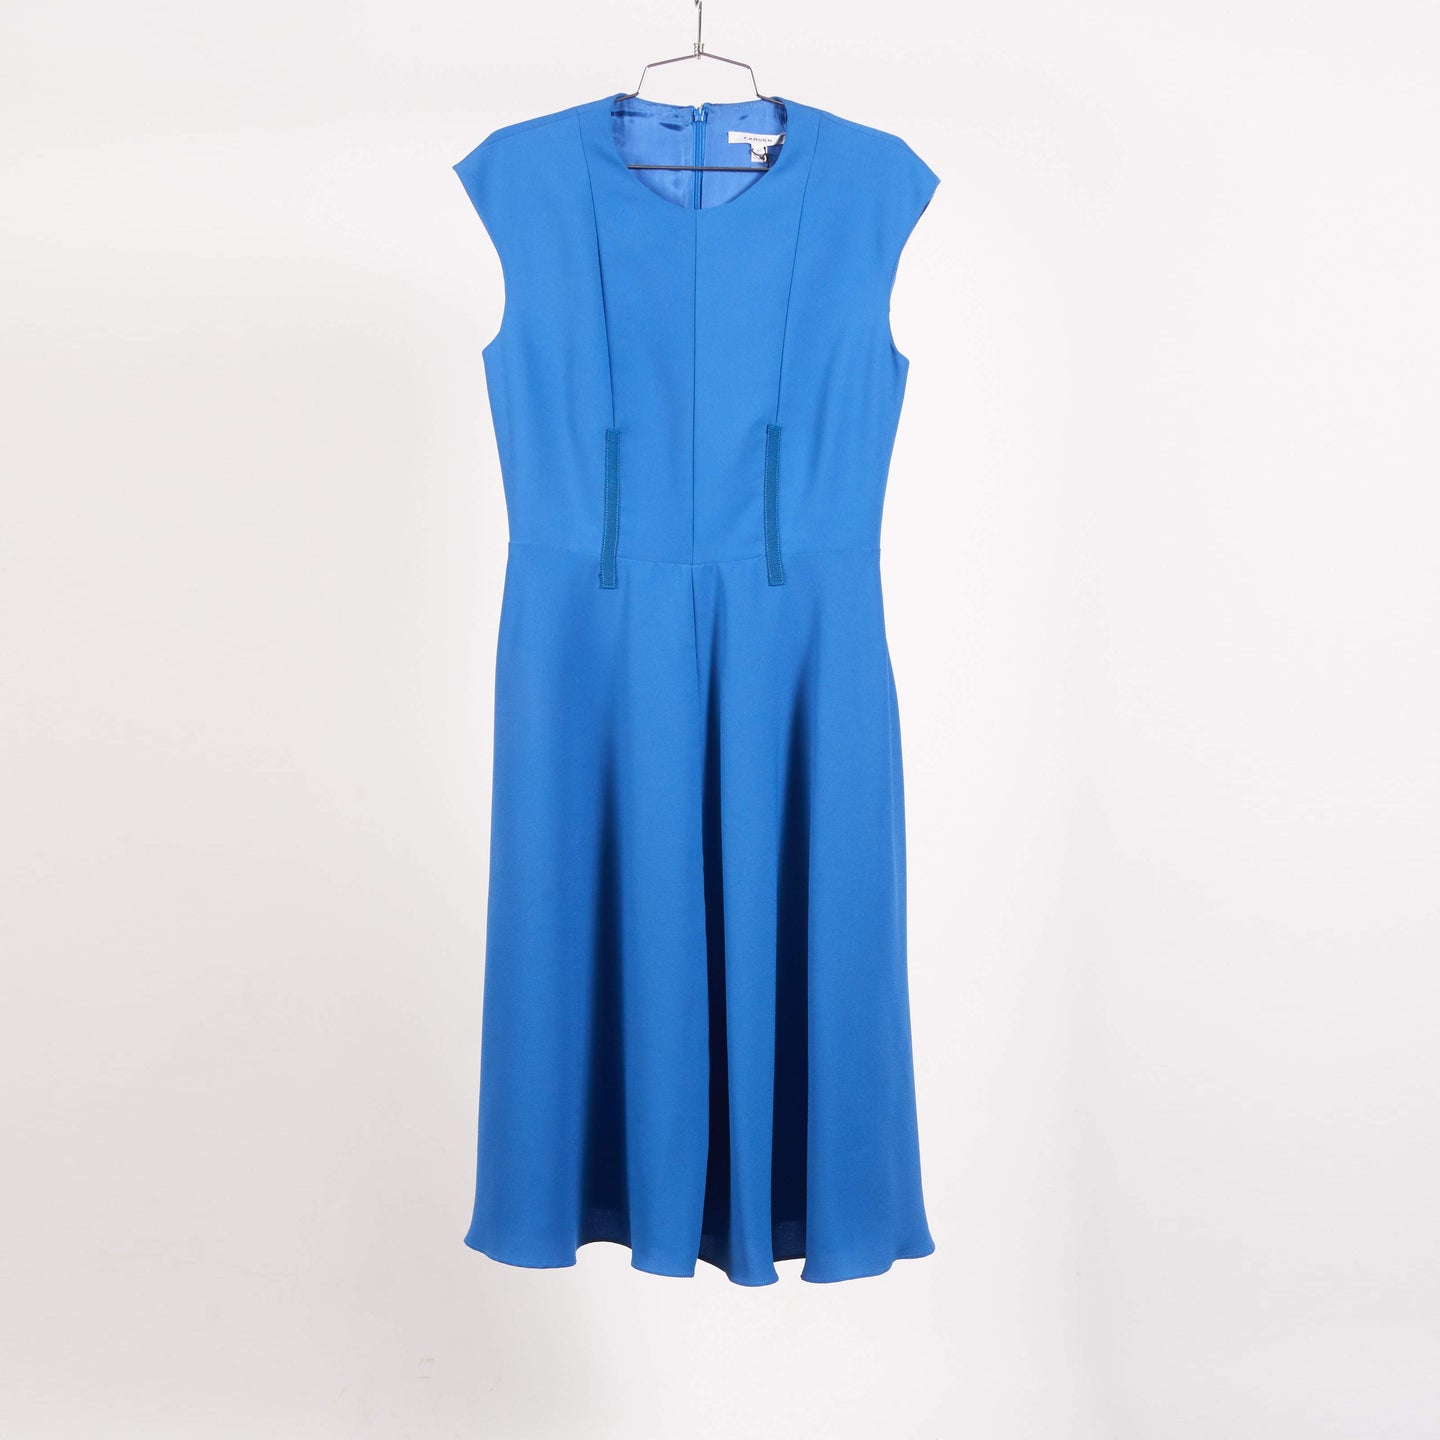 Royal Blue Cady Dress (40/42)